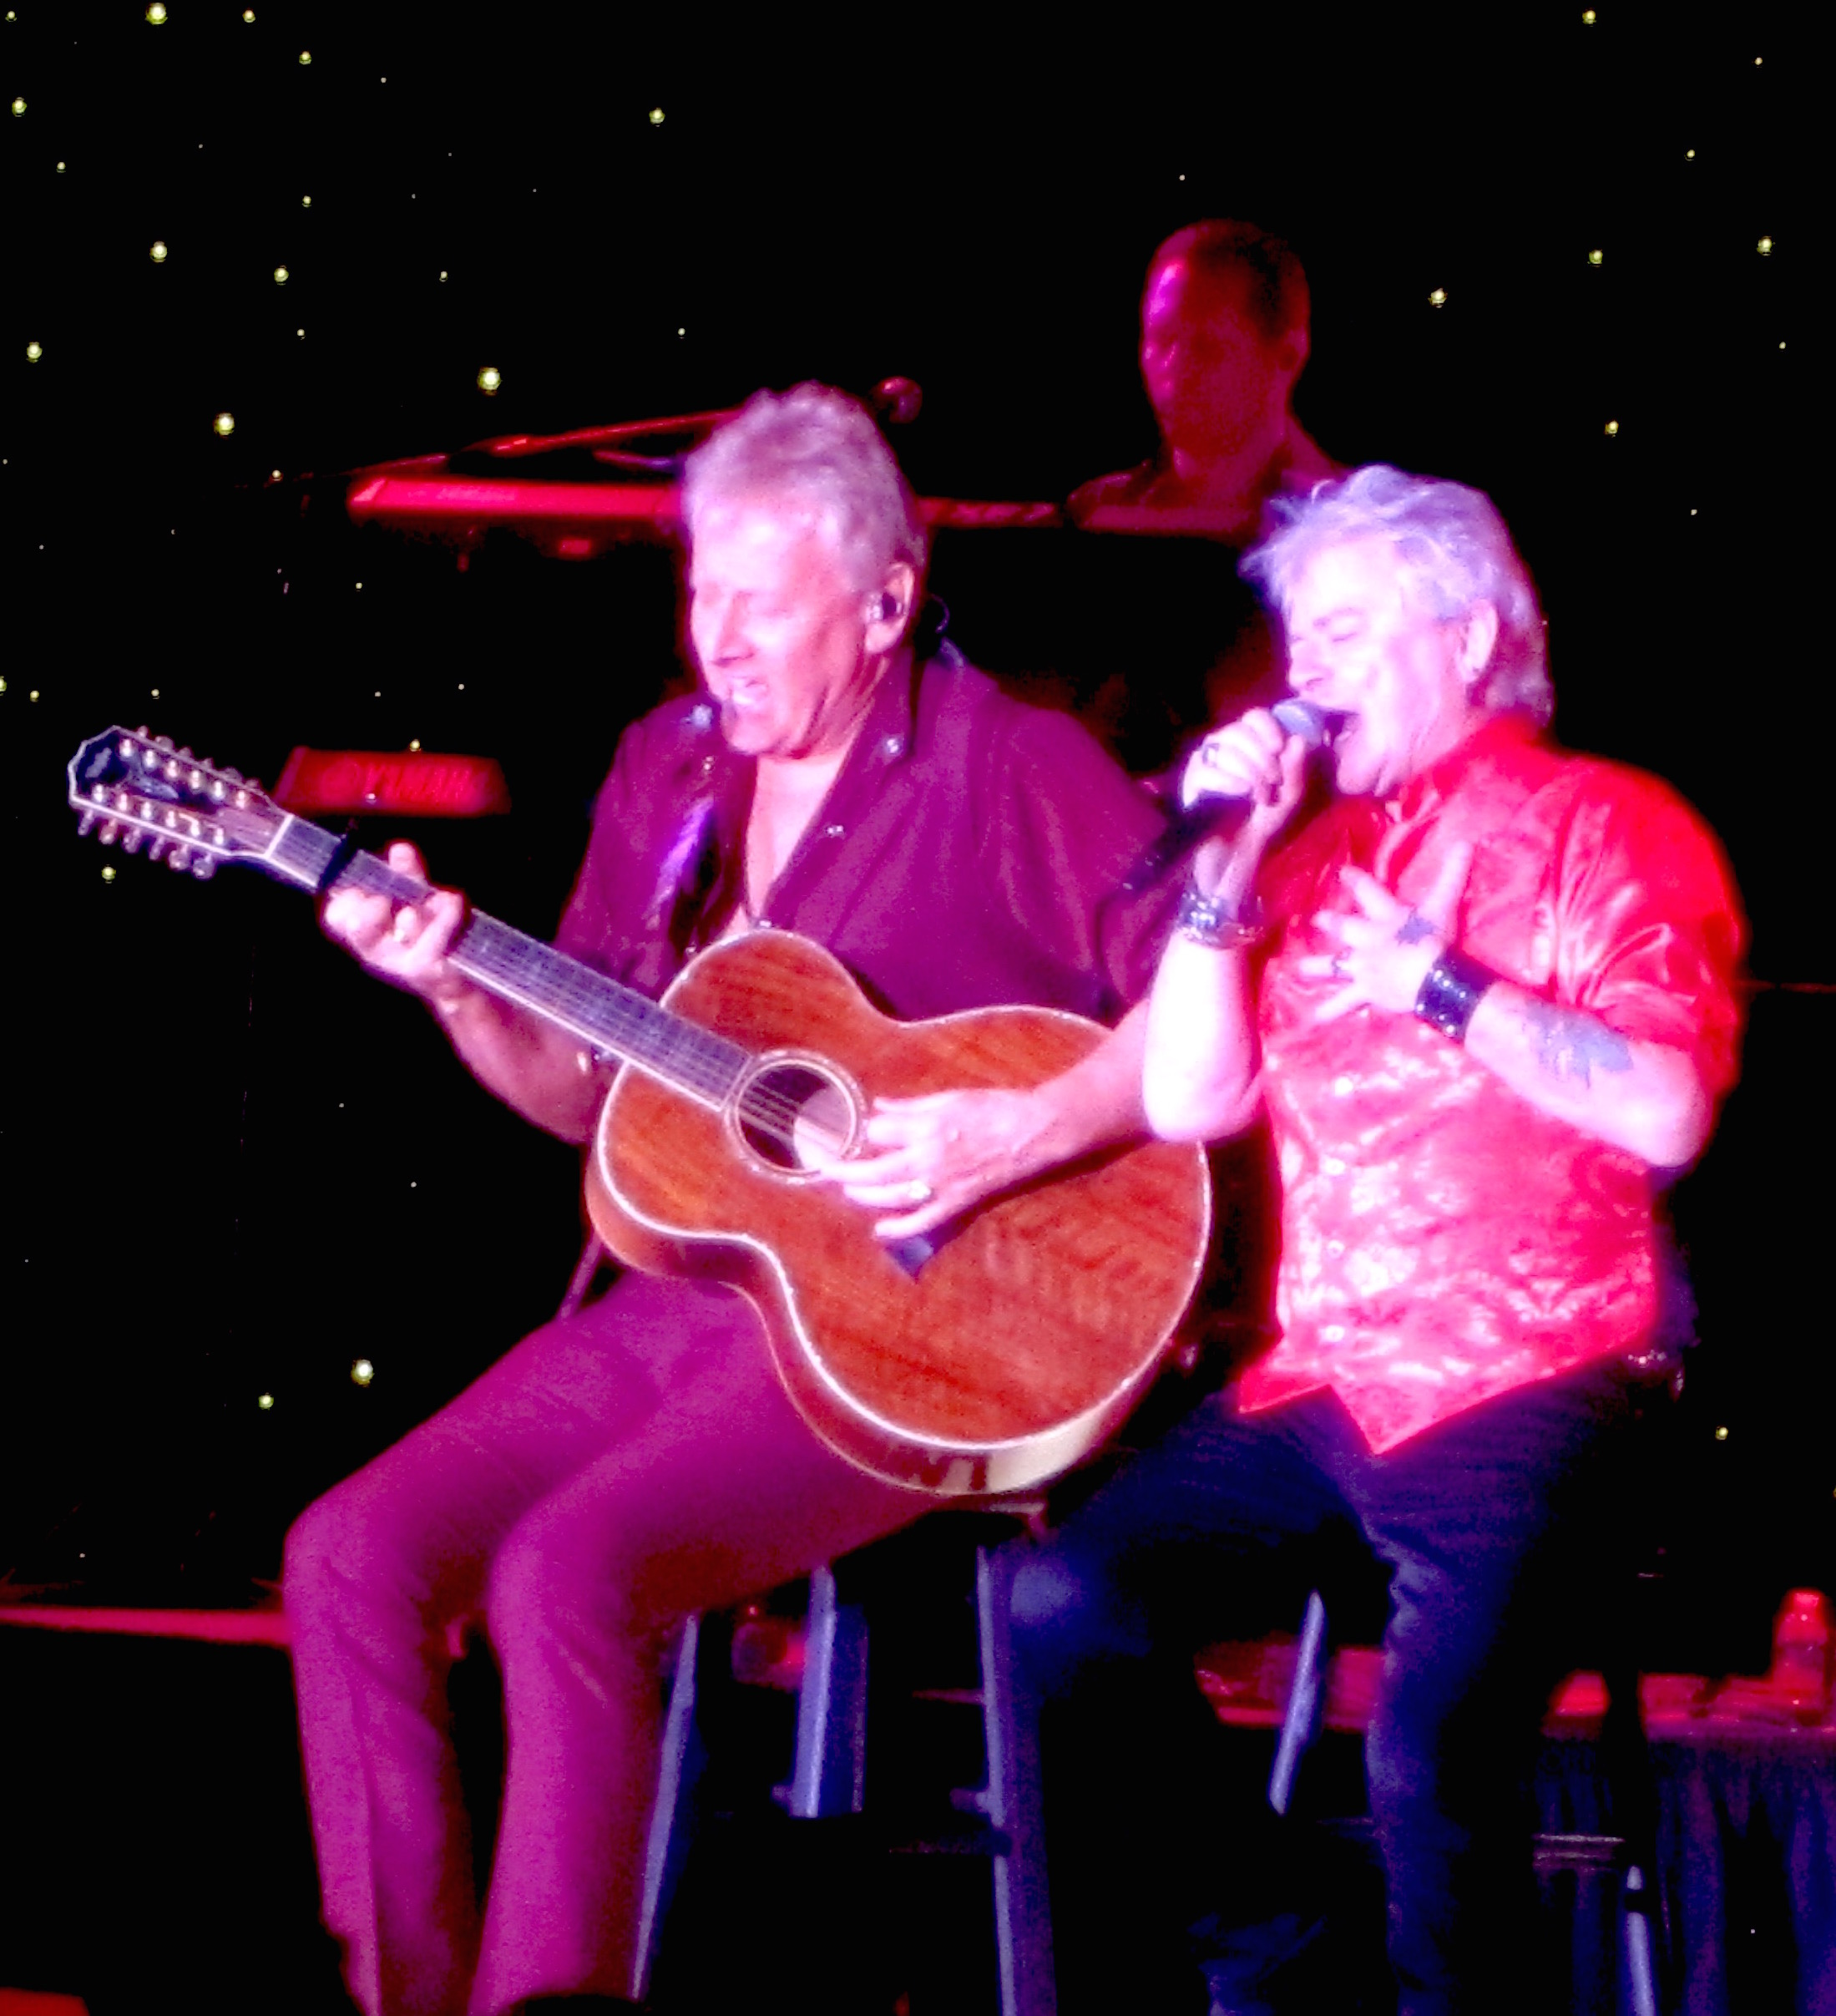 Air Supply - Every Woman In The World - The One That You Love